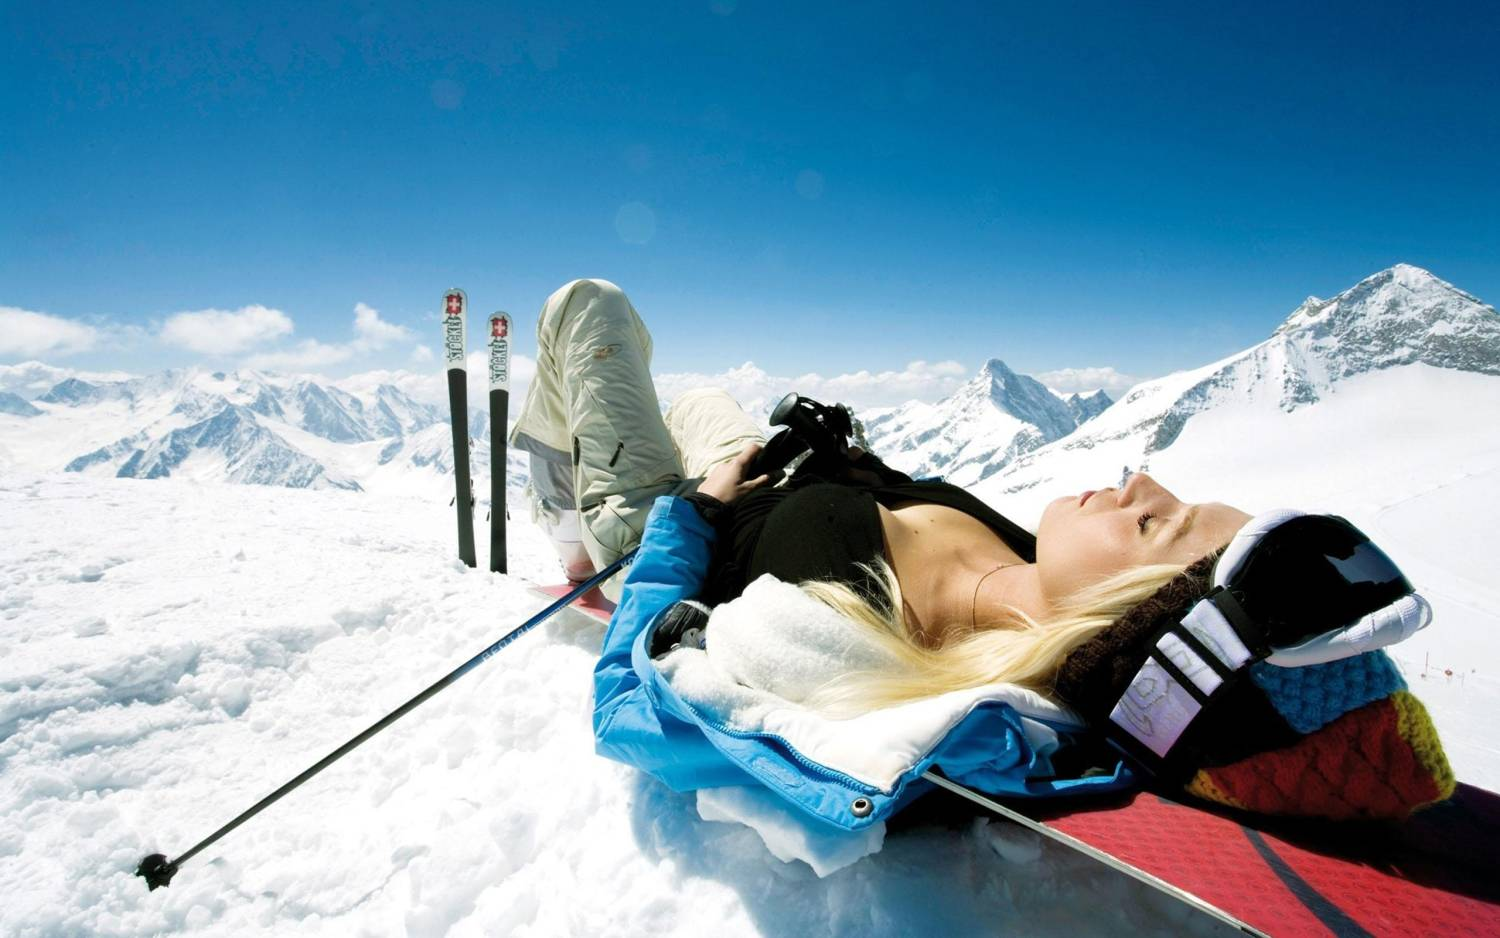 relax_in_the_snow_winter.jpg